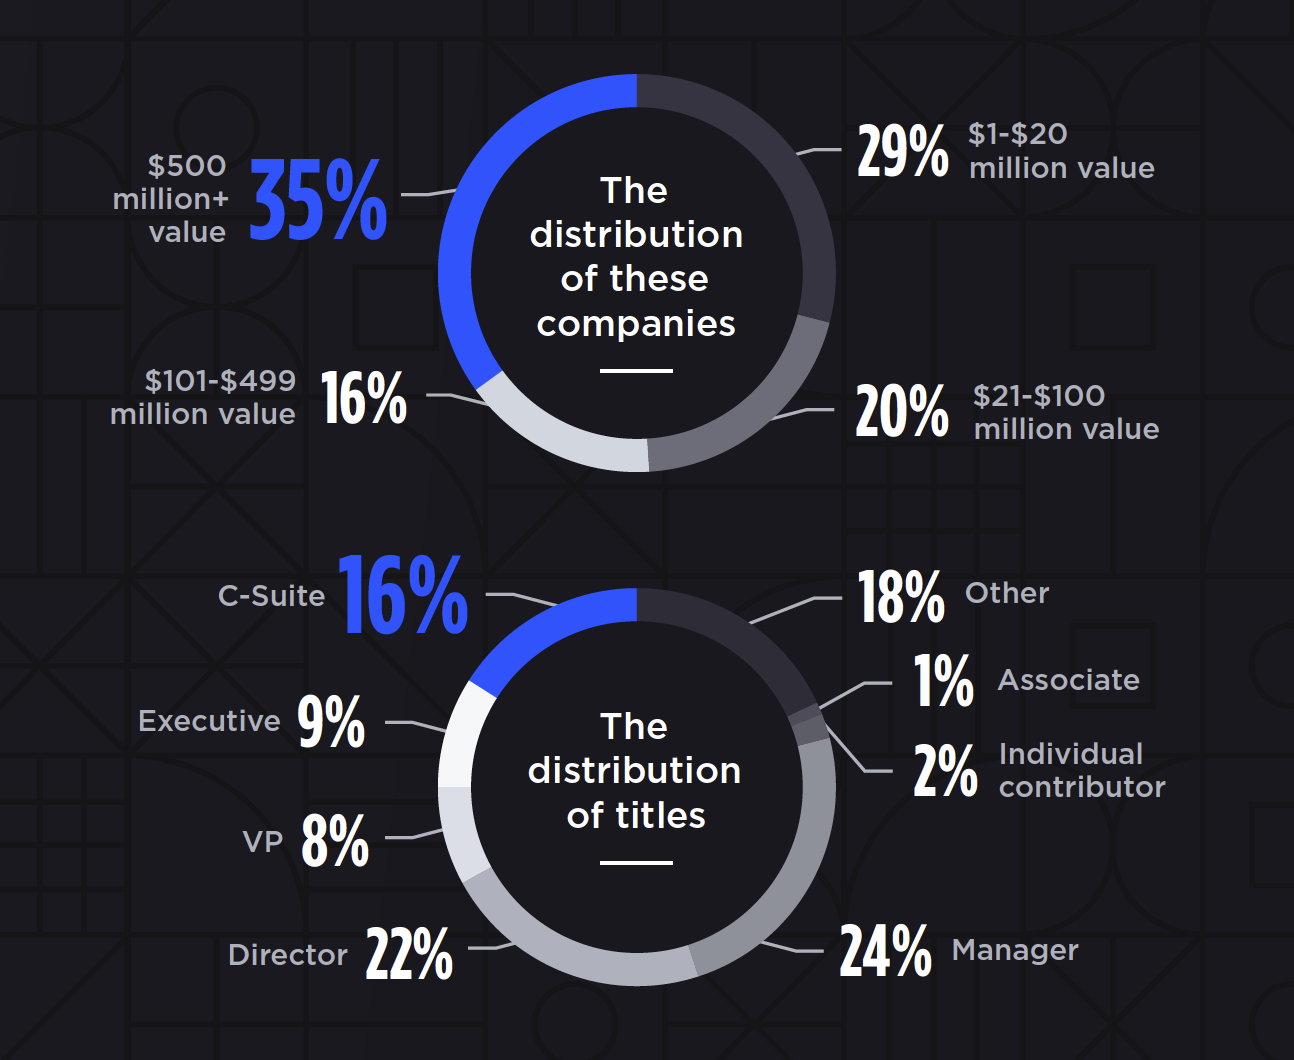 BigCommerce partnered with Retail Dive's Brand Studio to conduct an online survey of 140 executives and marketing managers globally with a focus on the future of ecommerce.